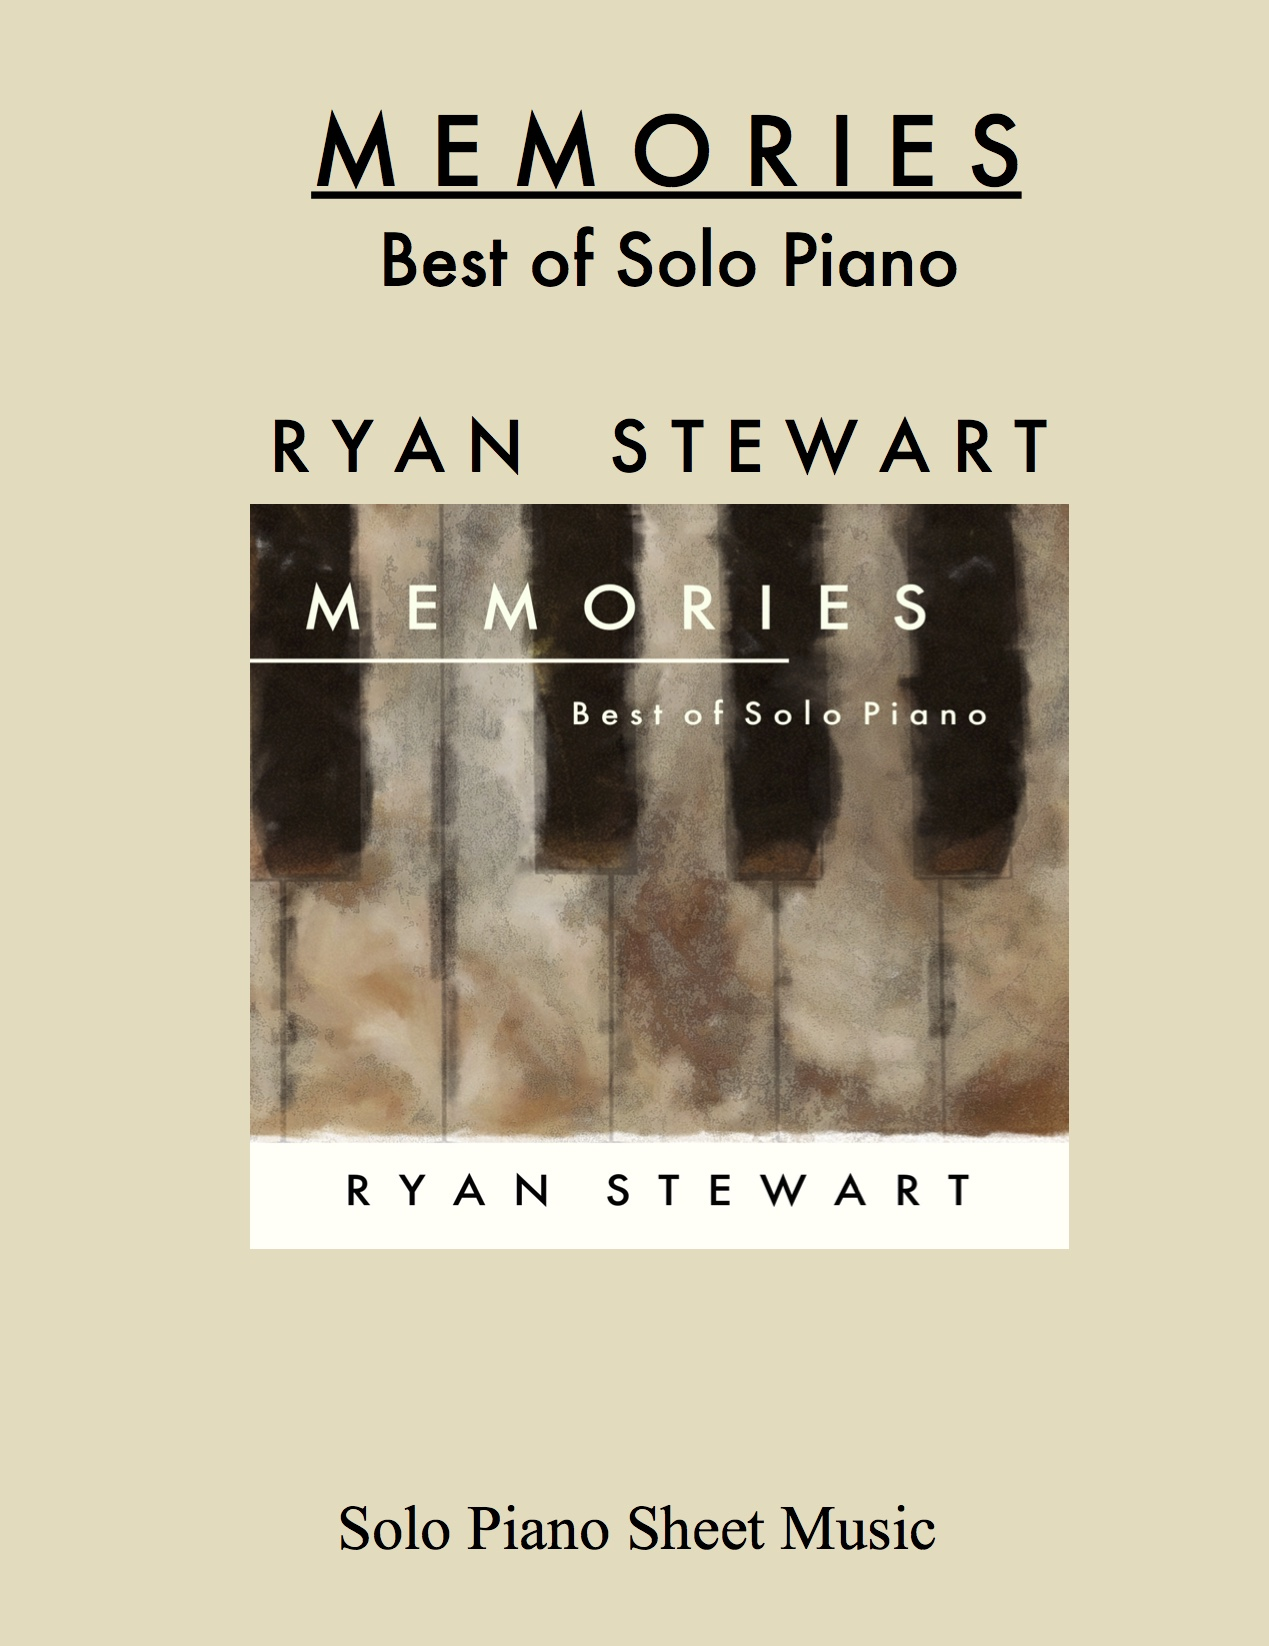 Memories: Best of Solo Piano